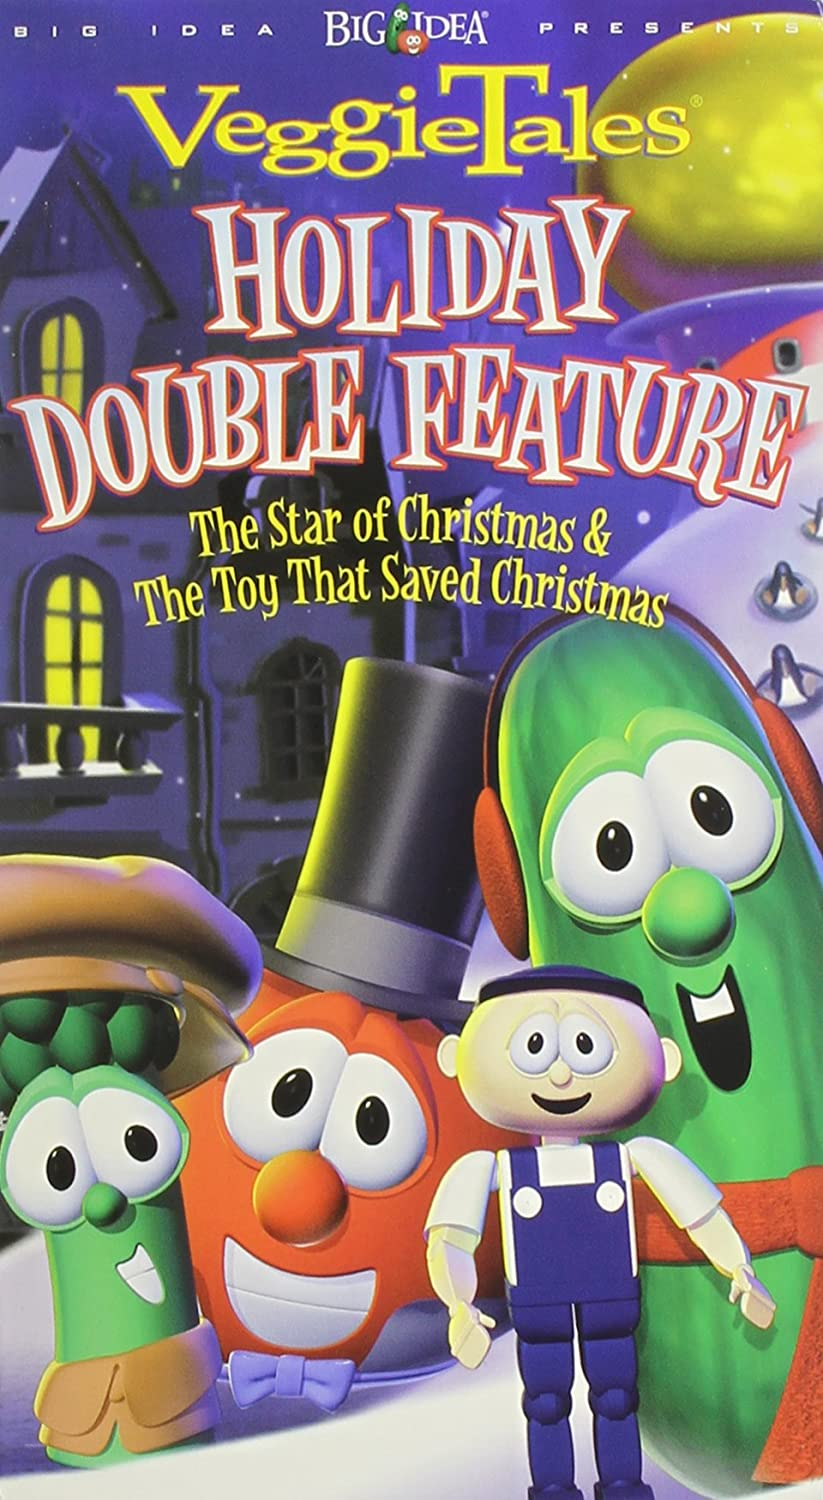 Amazon.com: VeggieTales Holiday Double Feature - The Toy That ...